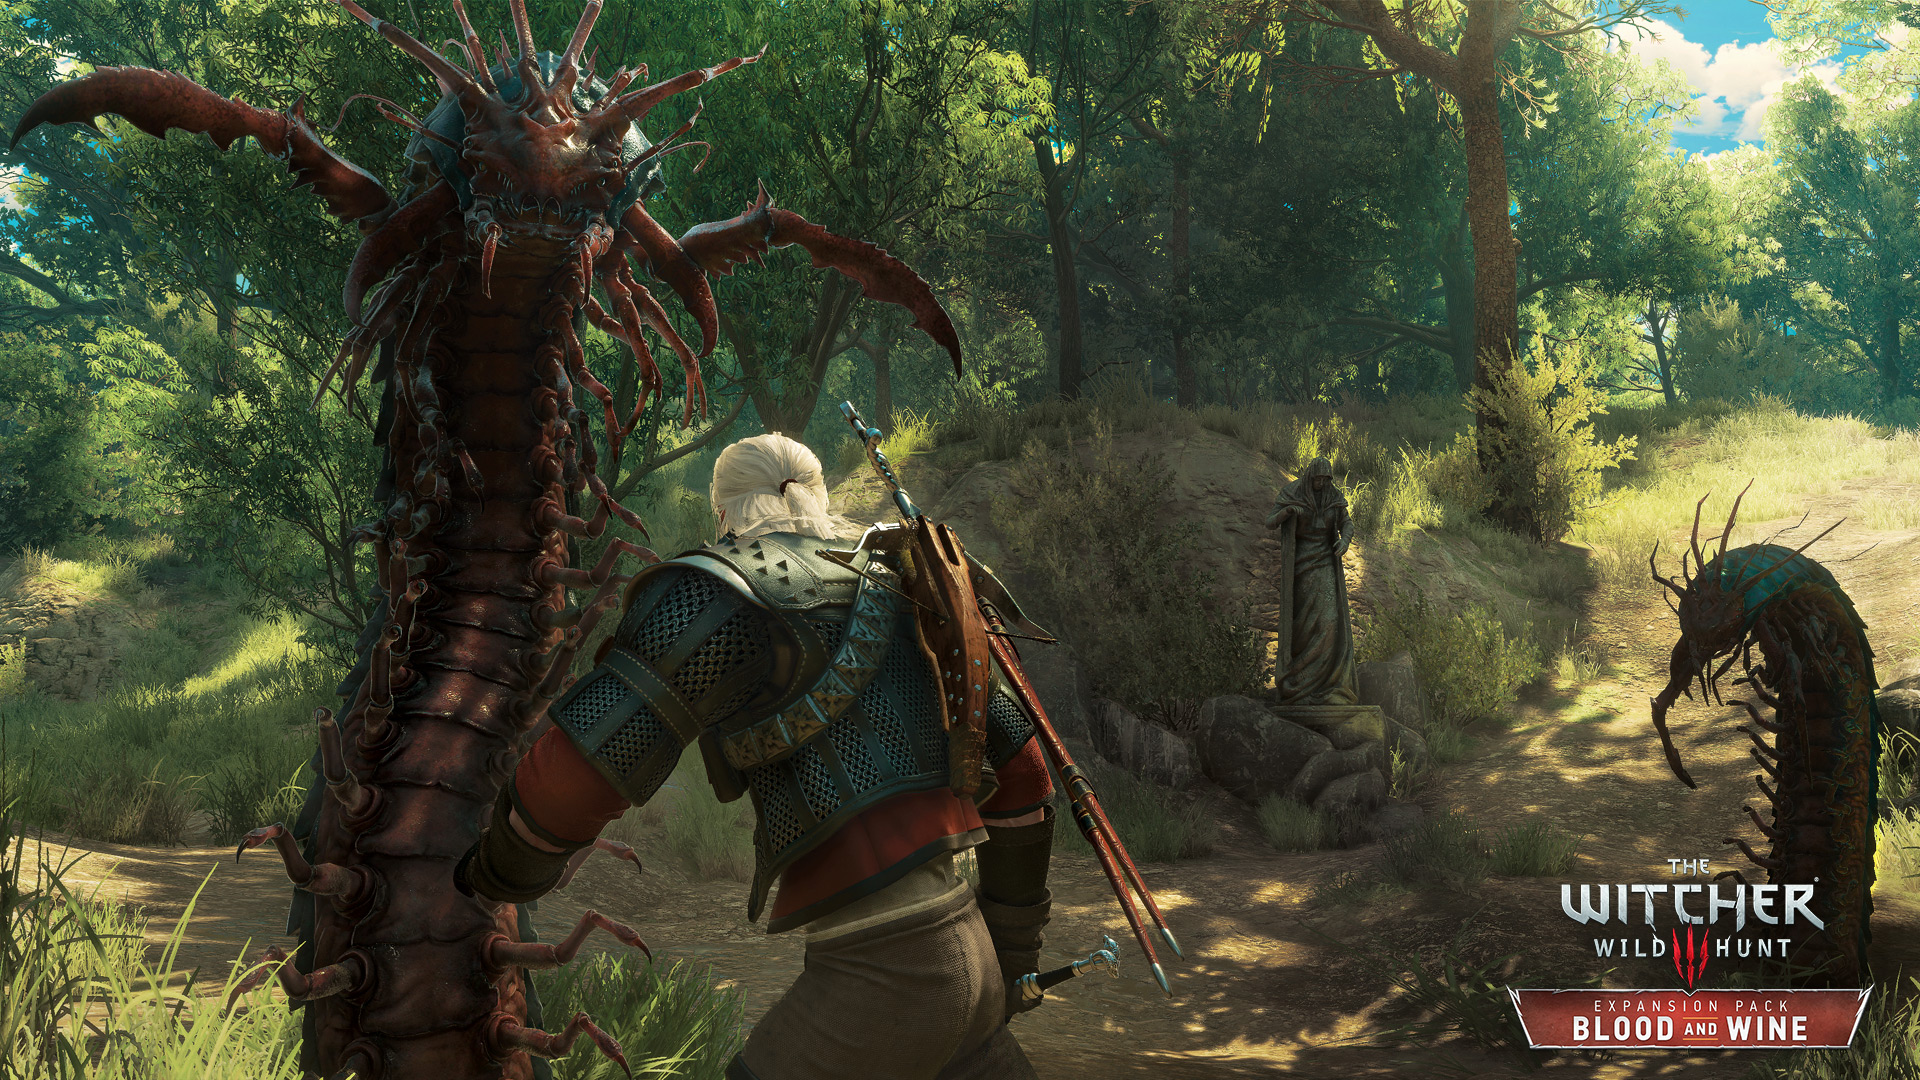 The Witcher 3 Wild Hunt Blood and Wine The Scolopendromorph   its harder to kill than to pronounce its name RGB EN 1464106315.0 Witcher 3: Blood And Wine Is A Fitting End To Geralts Adventures